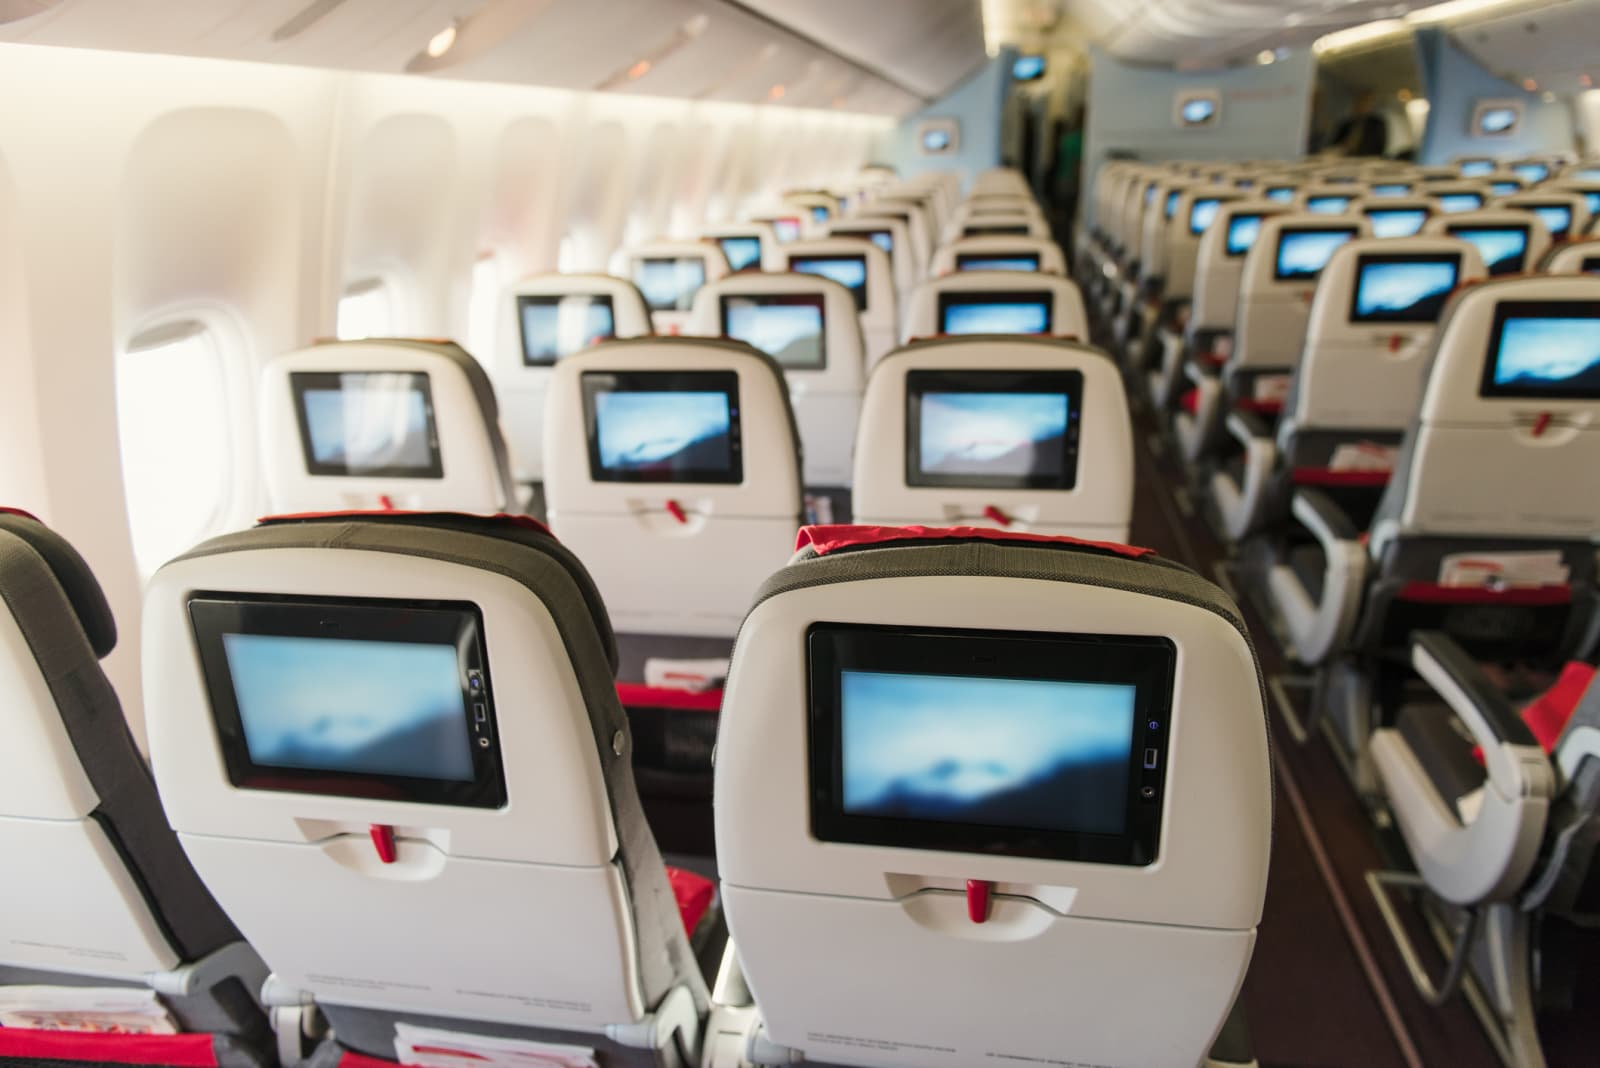 photo of economy class seats on an airplane